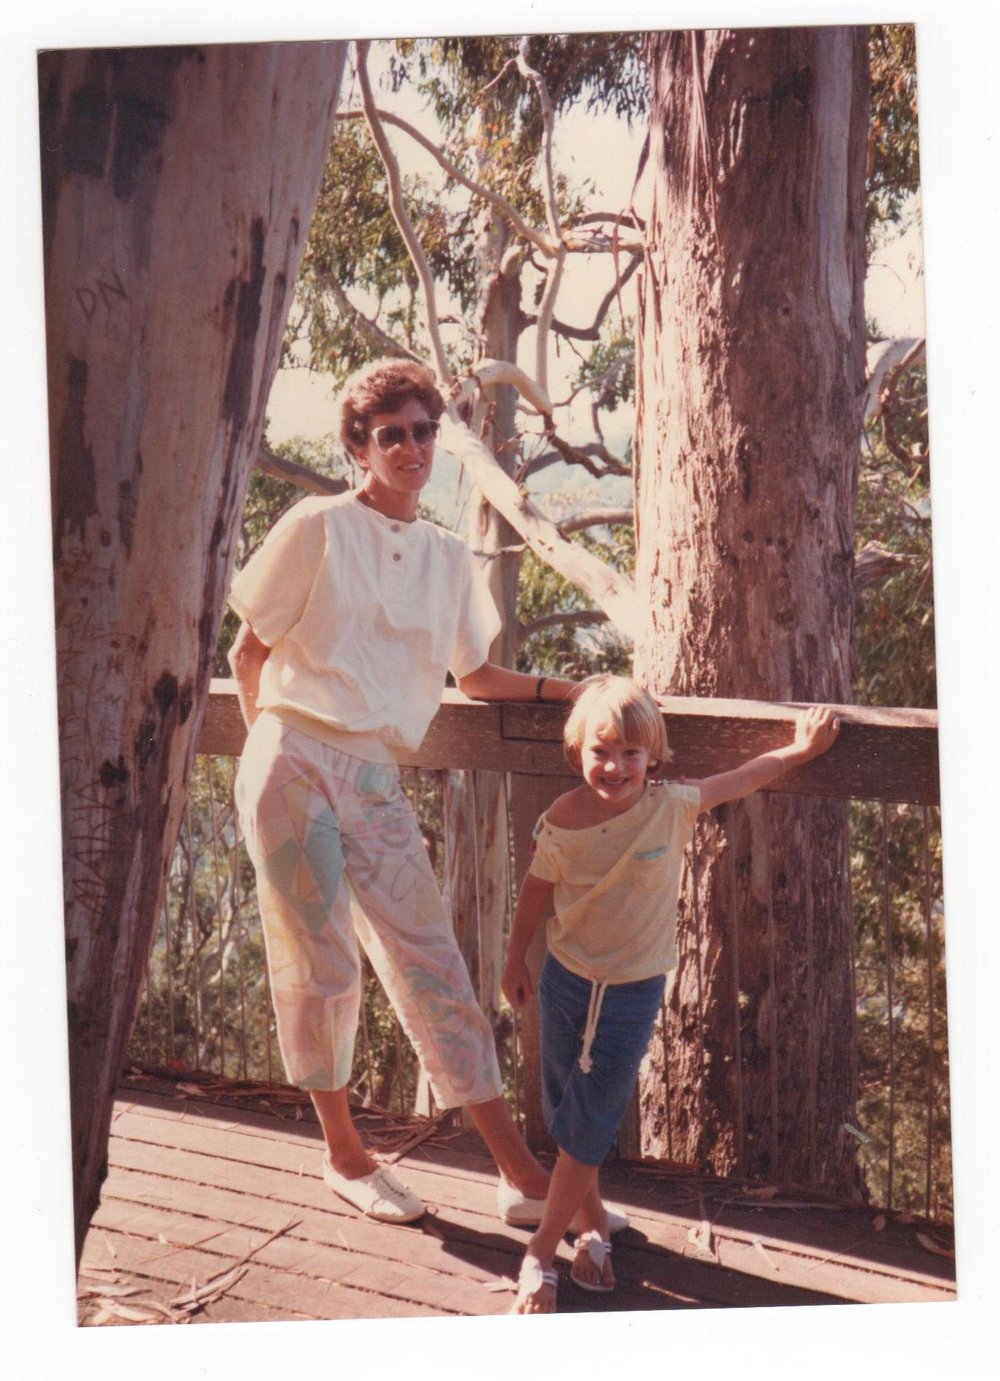 Mum & I in the 80's - obviously.